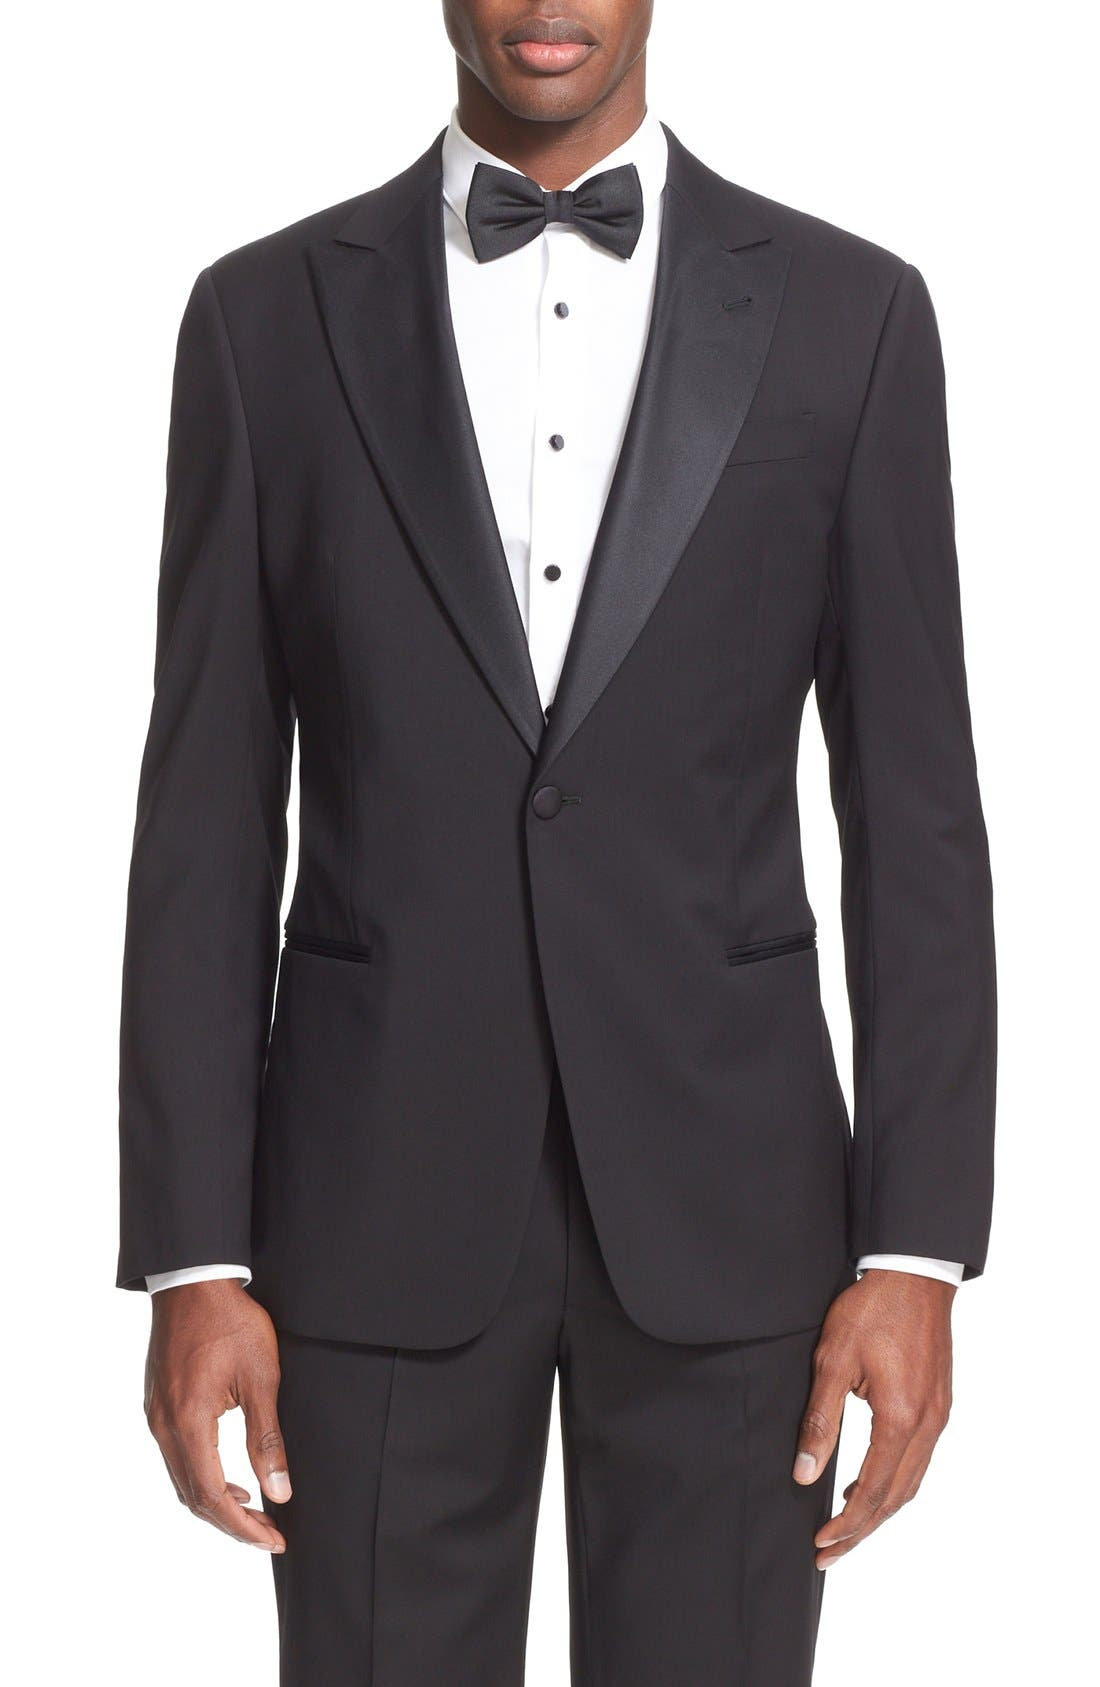 Trim Fit Wool Tuxedo,                             Alternate thumbnail 13, color,                             001